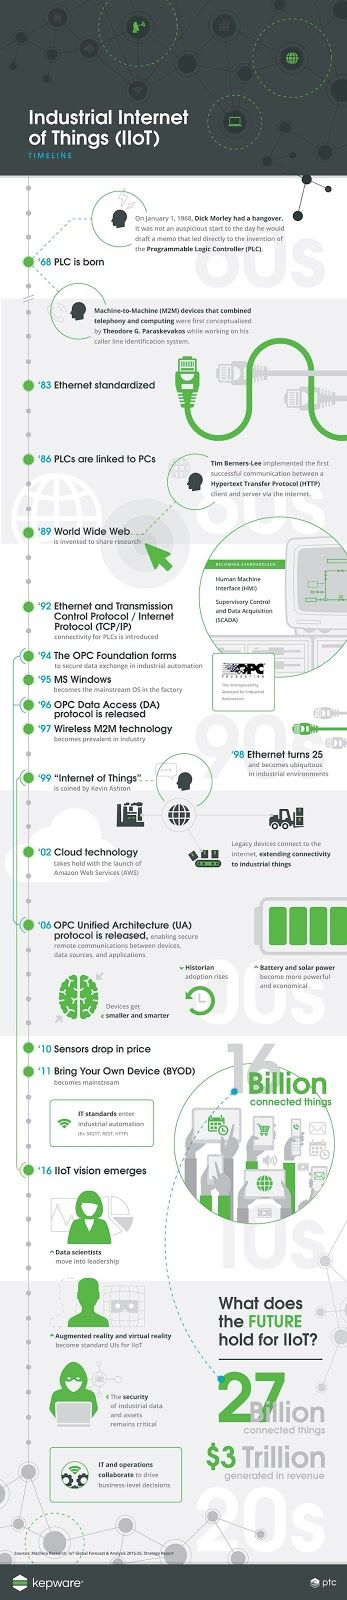 Internet of Things (Timeline)